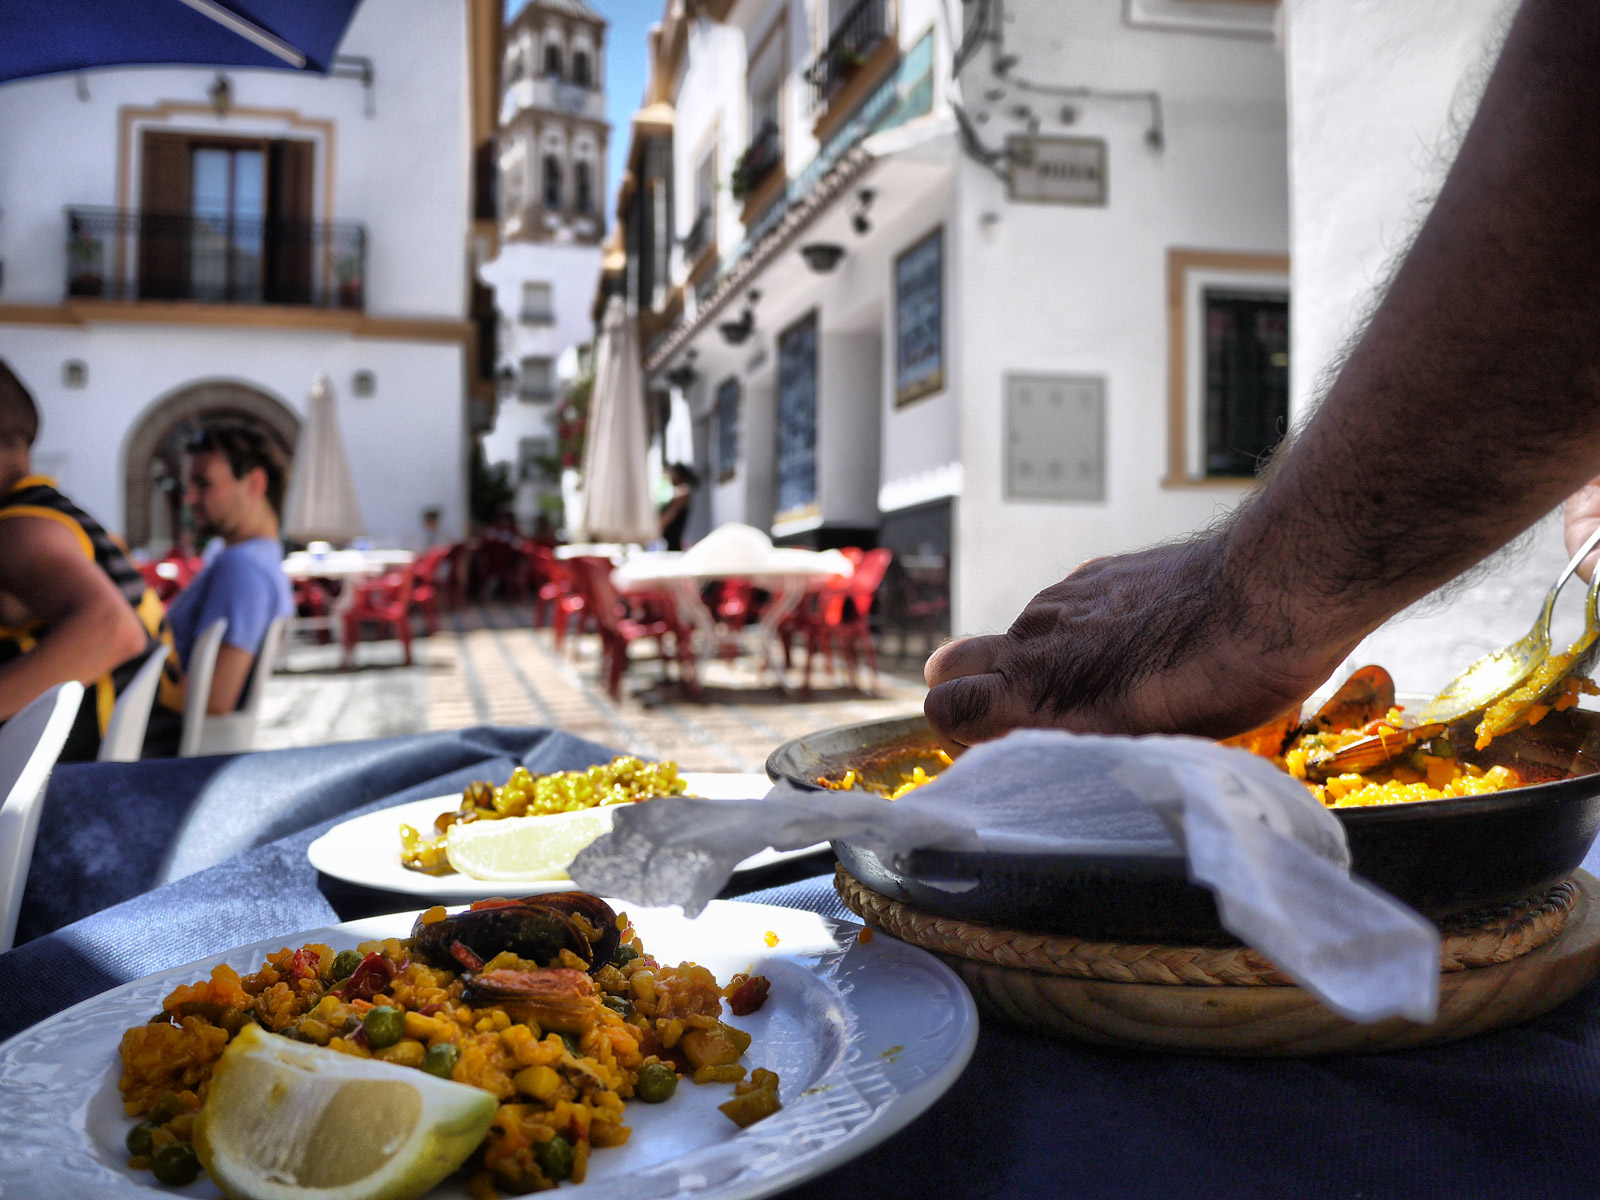 Enjoying Paella in the Old Town at El Pozo Viejo - Marbella, Spain